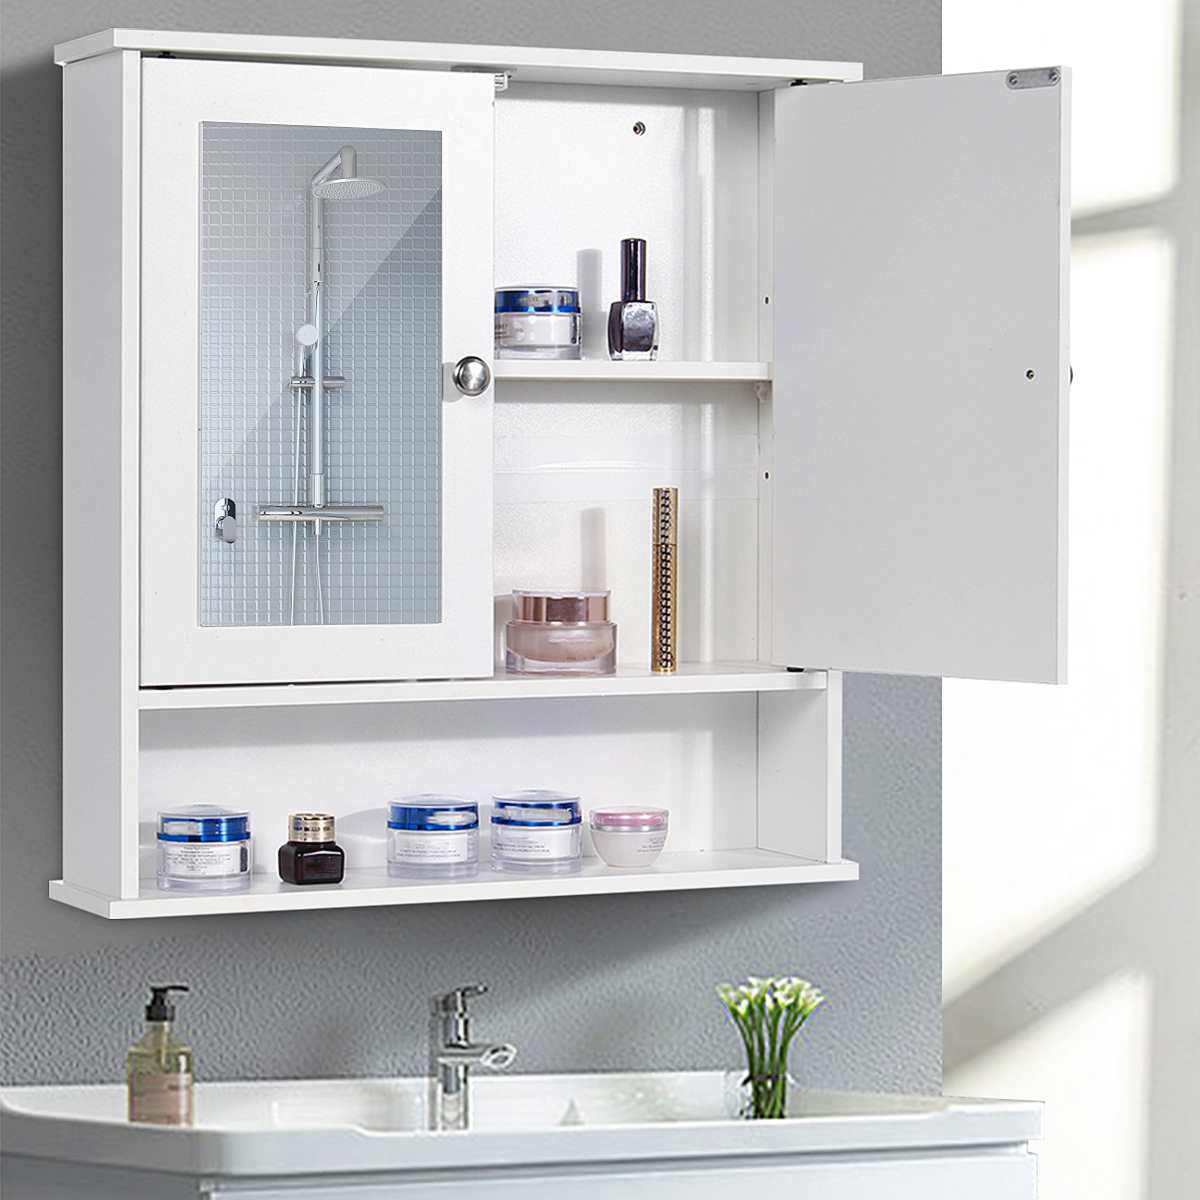 58 X 56 X 13cm Bathroom Cabinet With Mirror Wall Mounted Bathroom Toilet Furniture Cabinet Cupboard Shelf Cosmetic Storager